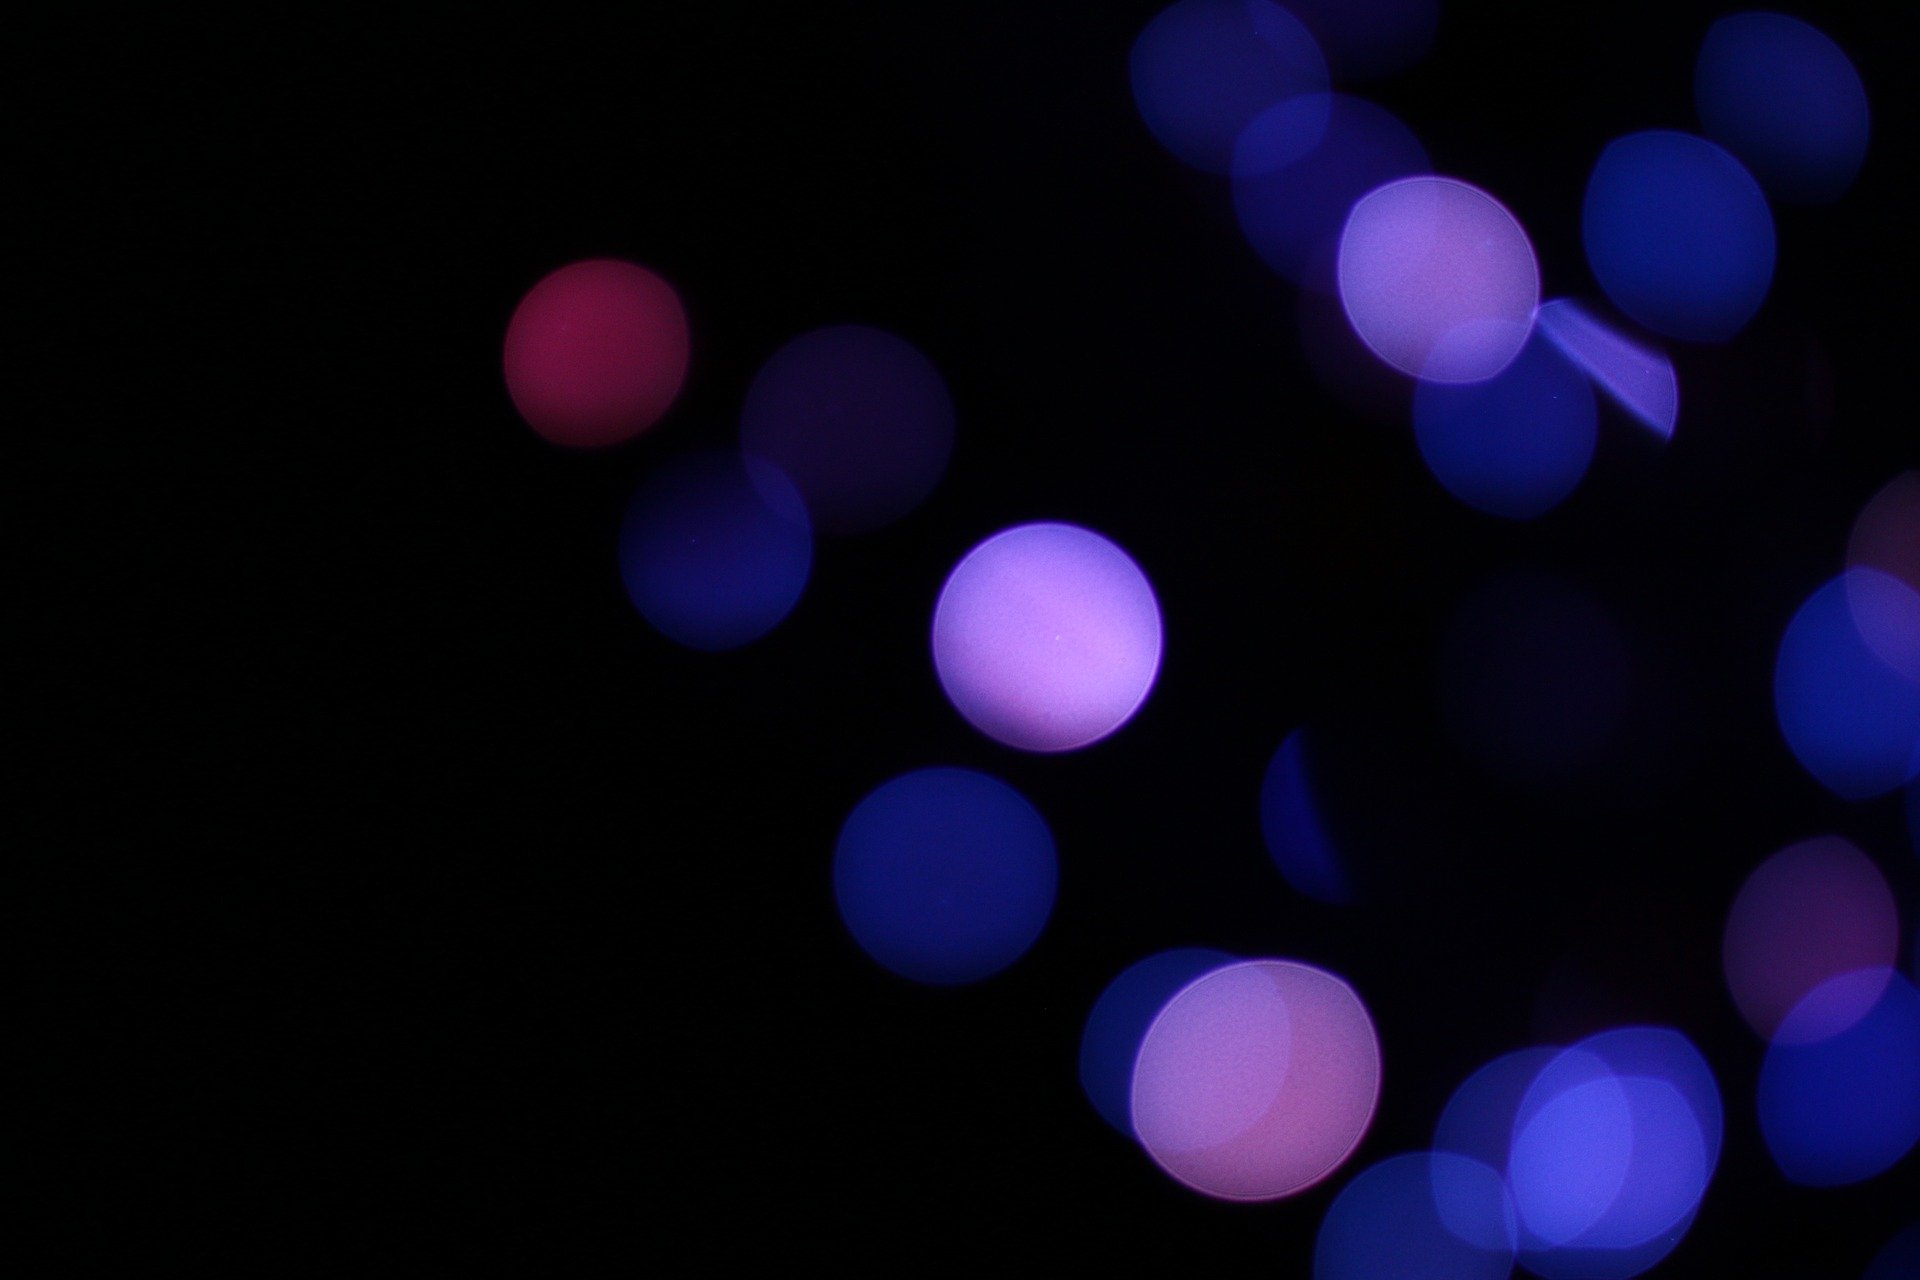 Artistic - Bokeh  Blue Circle Photography Wallpaper